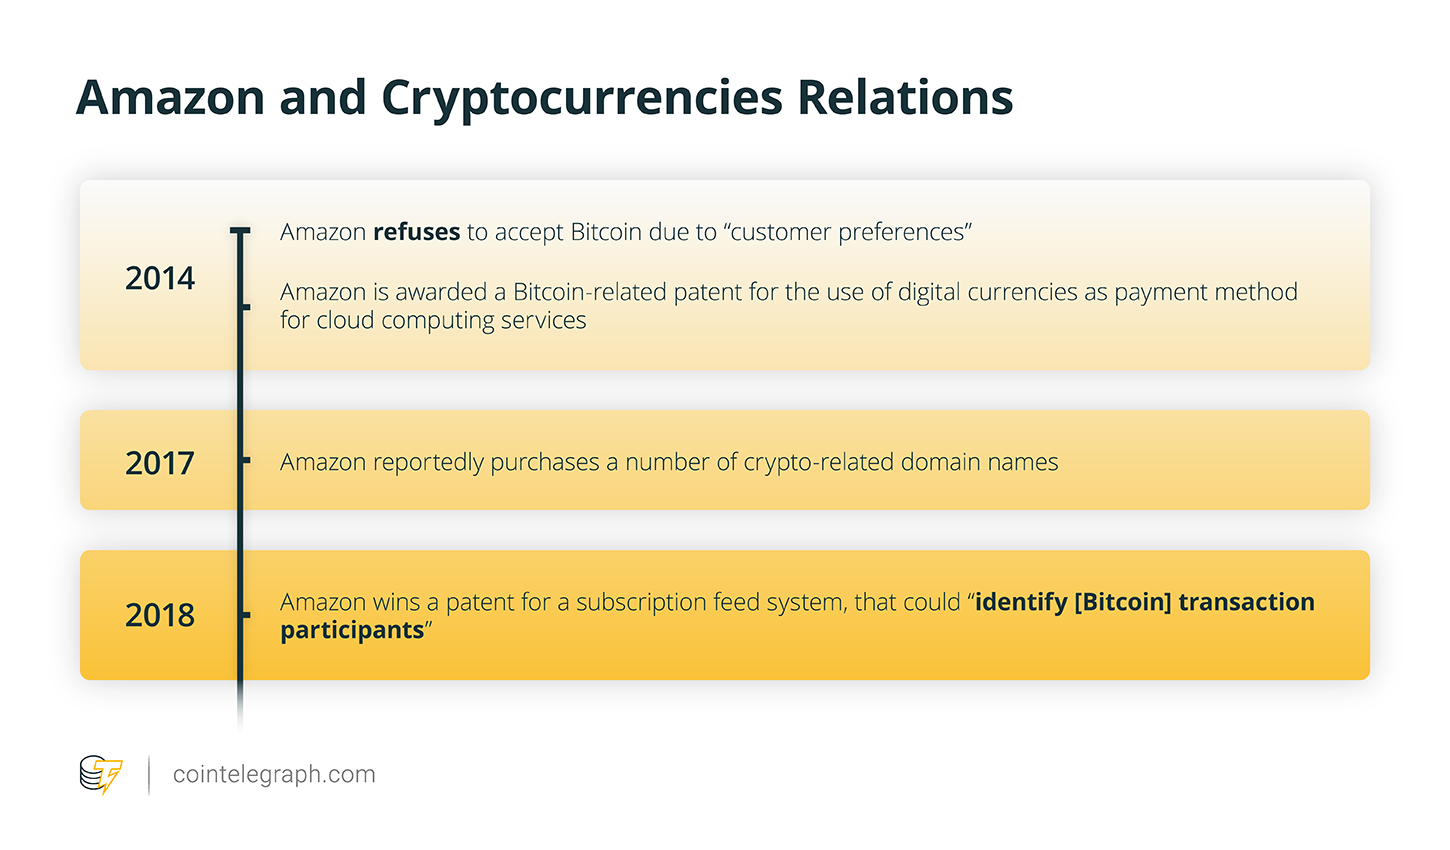 Amazon and cryptocurrencies